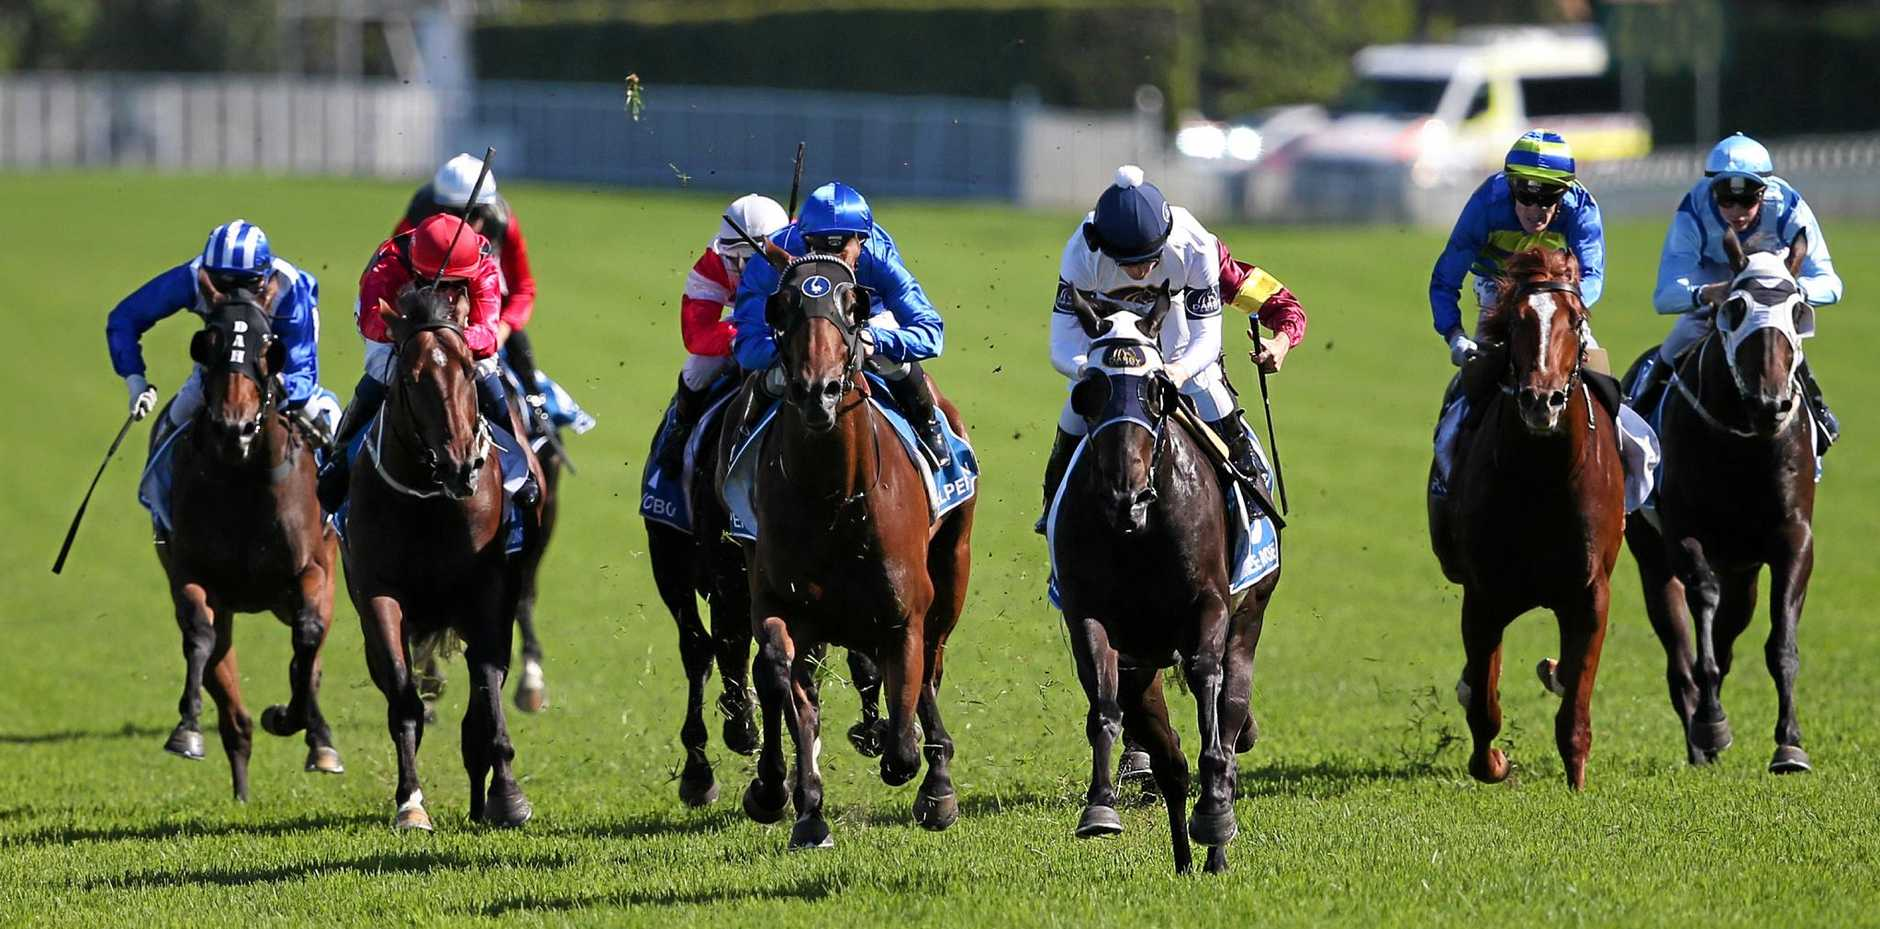 STAR PERFORMER: Yankee Rose, centre, wins the Inglis Sires at The Championships.